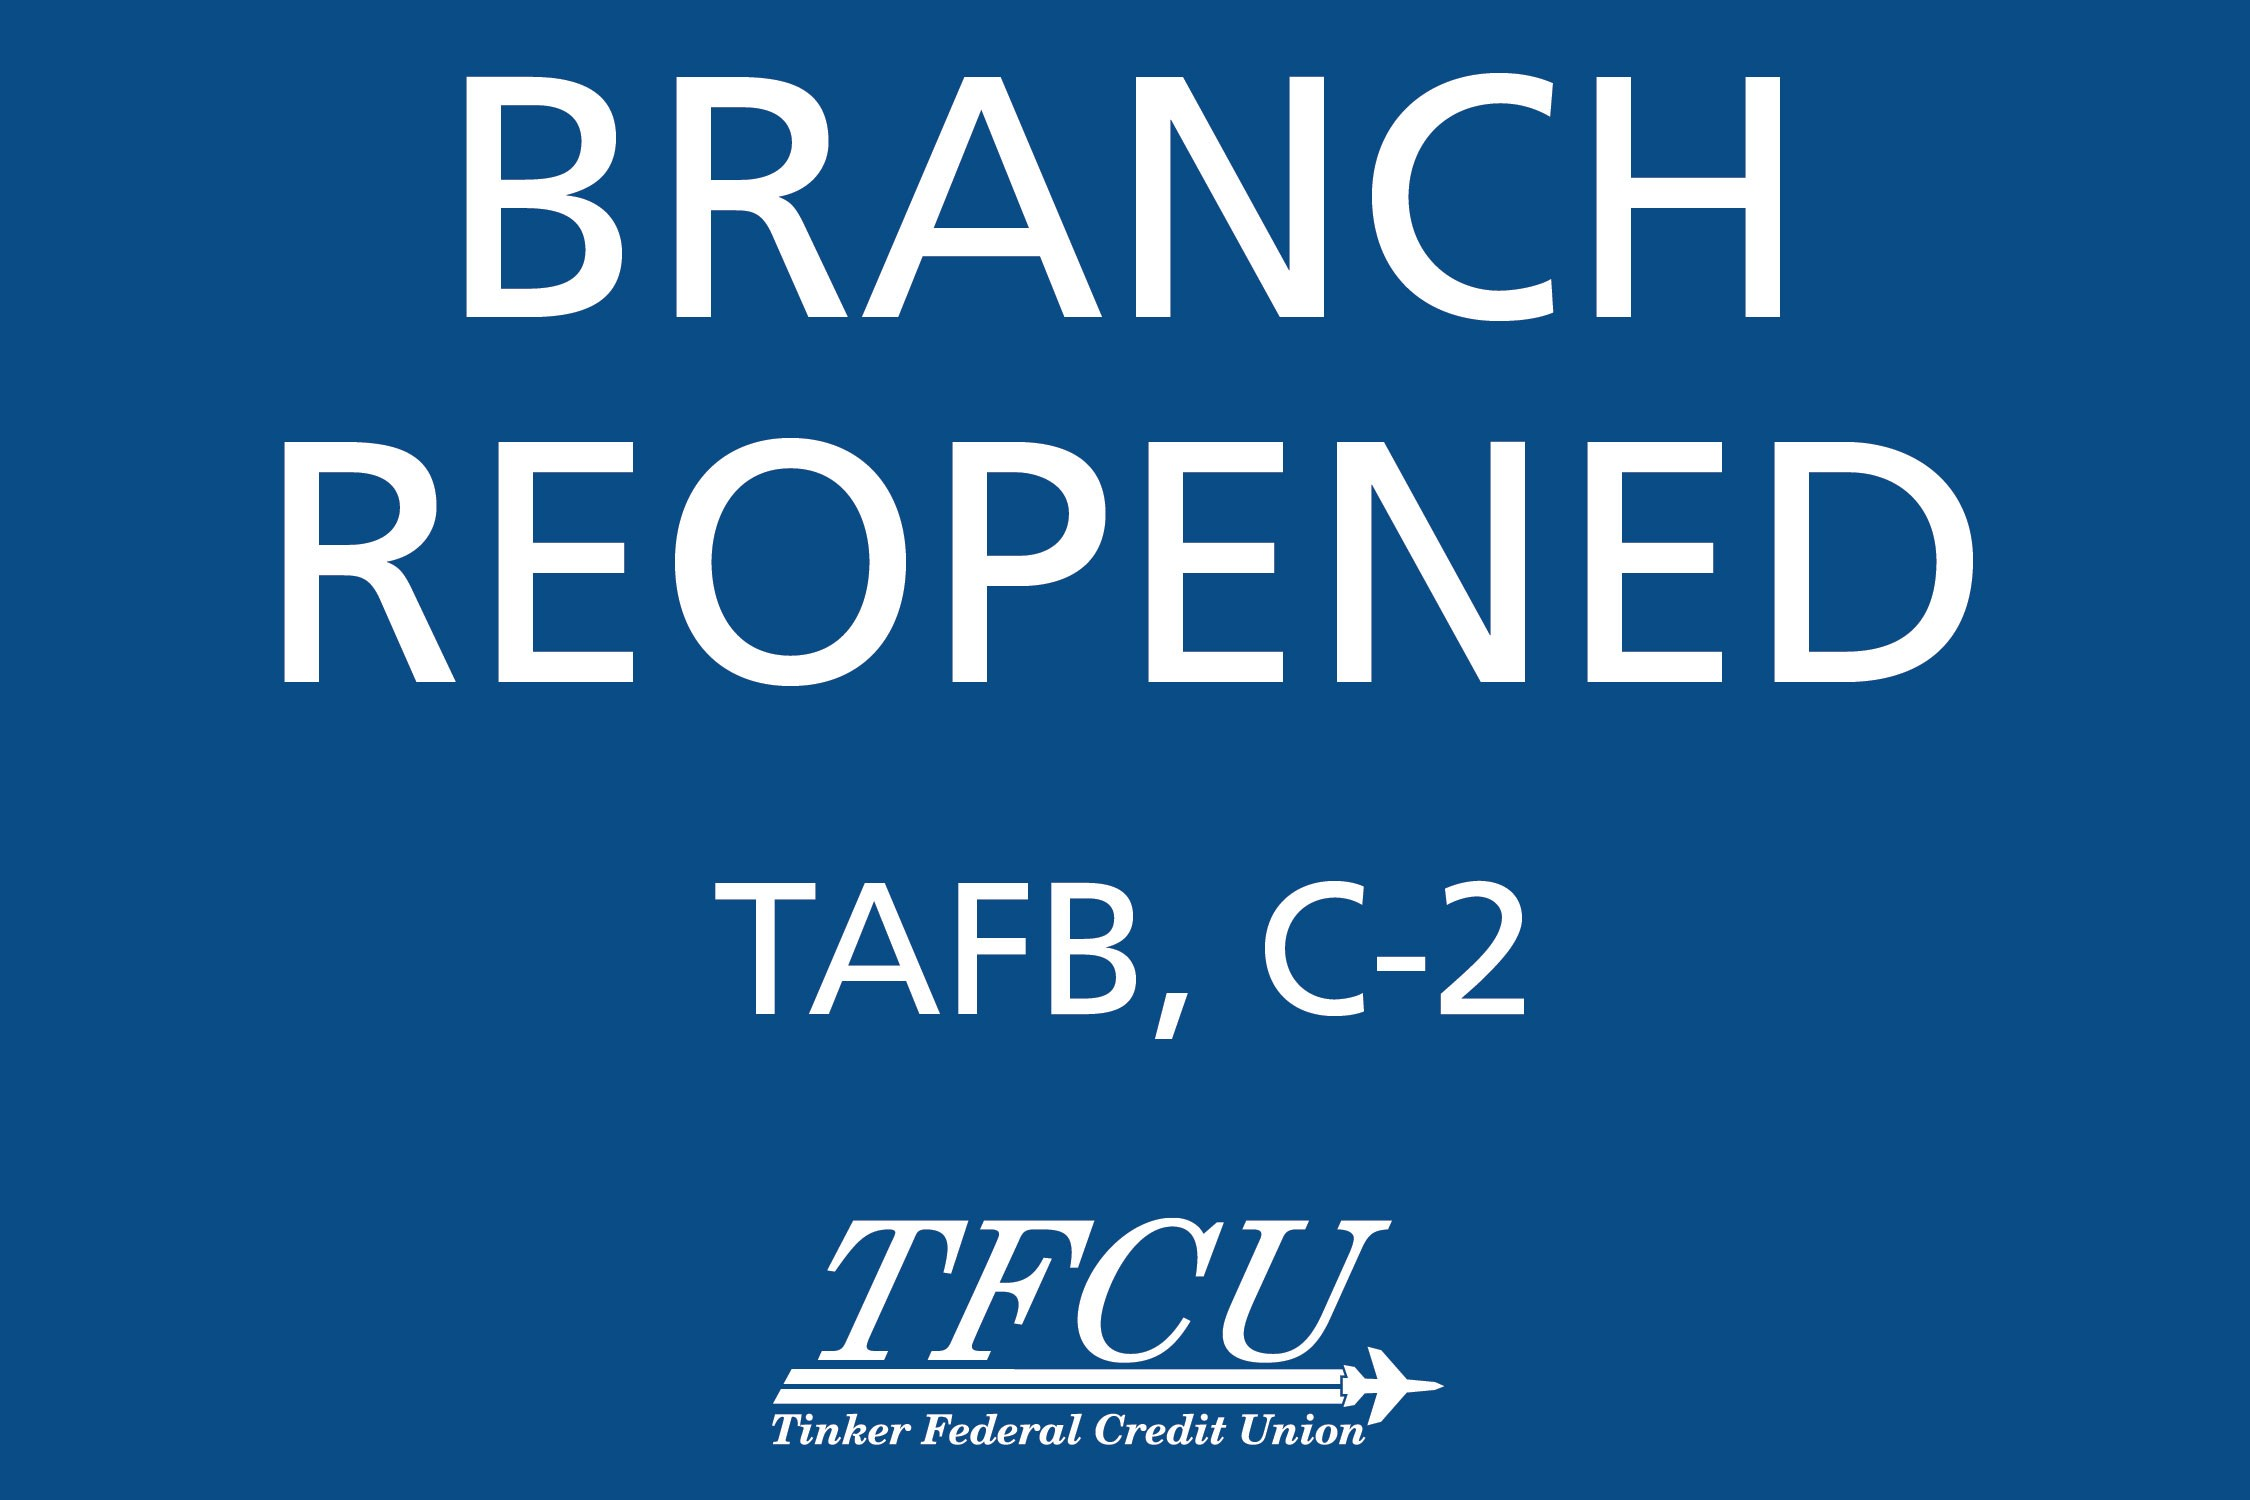 C2 Branch Reopened